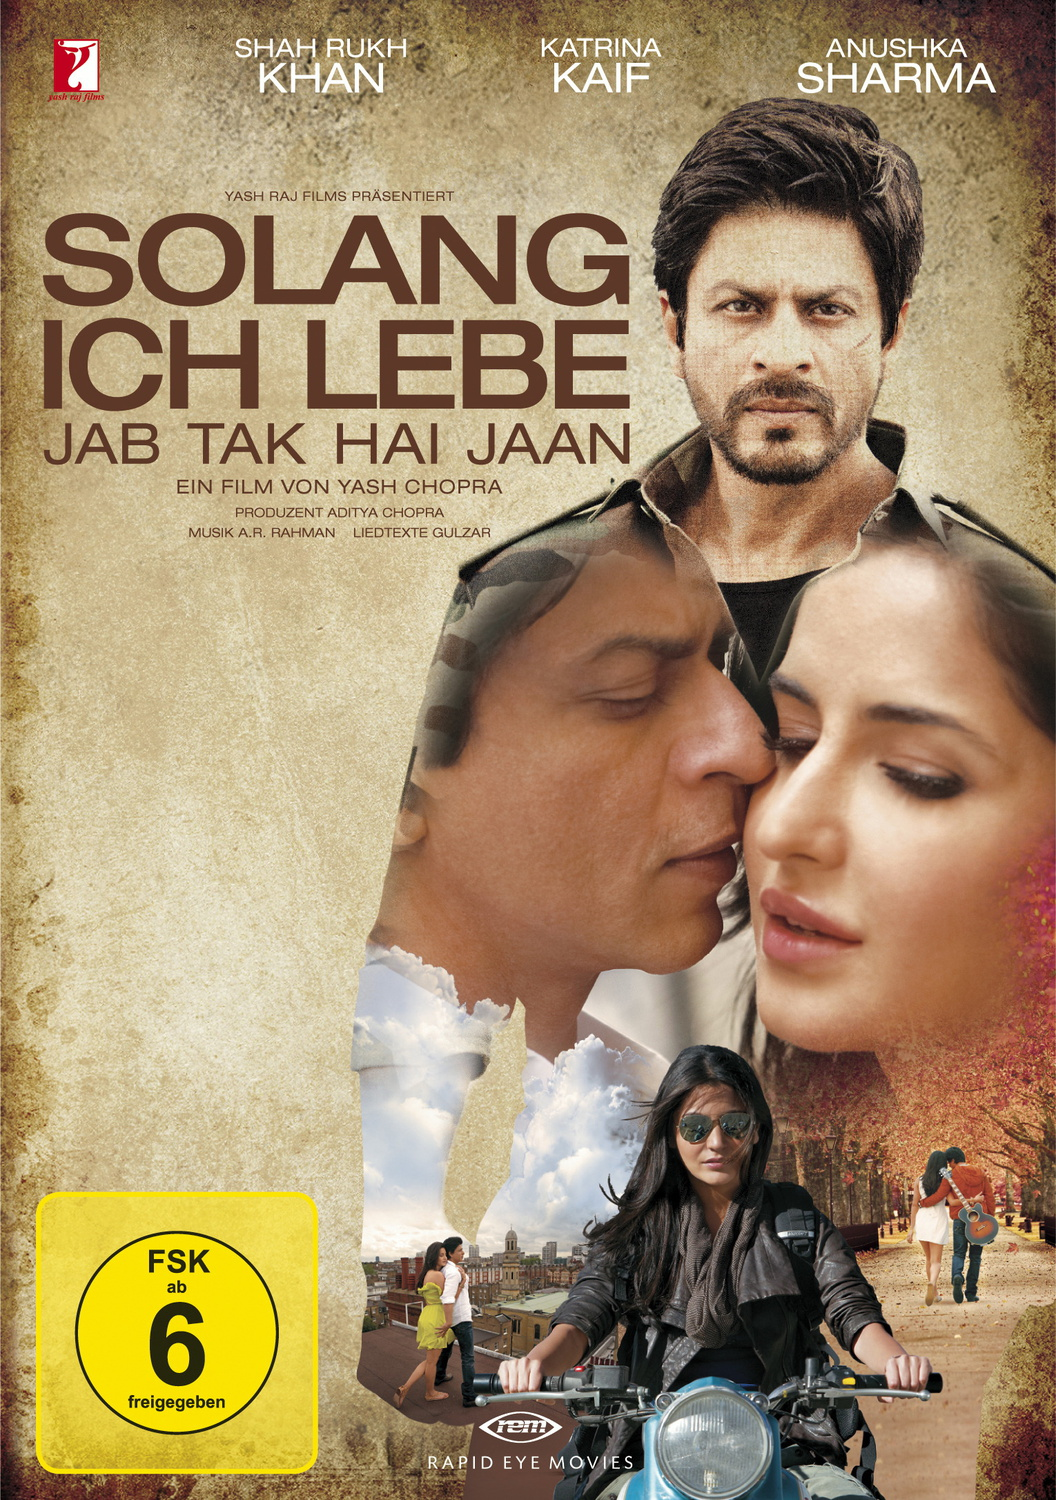 Solang ich lebe - Jab Tak Hai Jaan [2 DVDs, Spe...